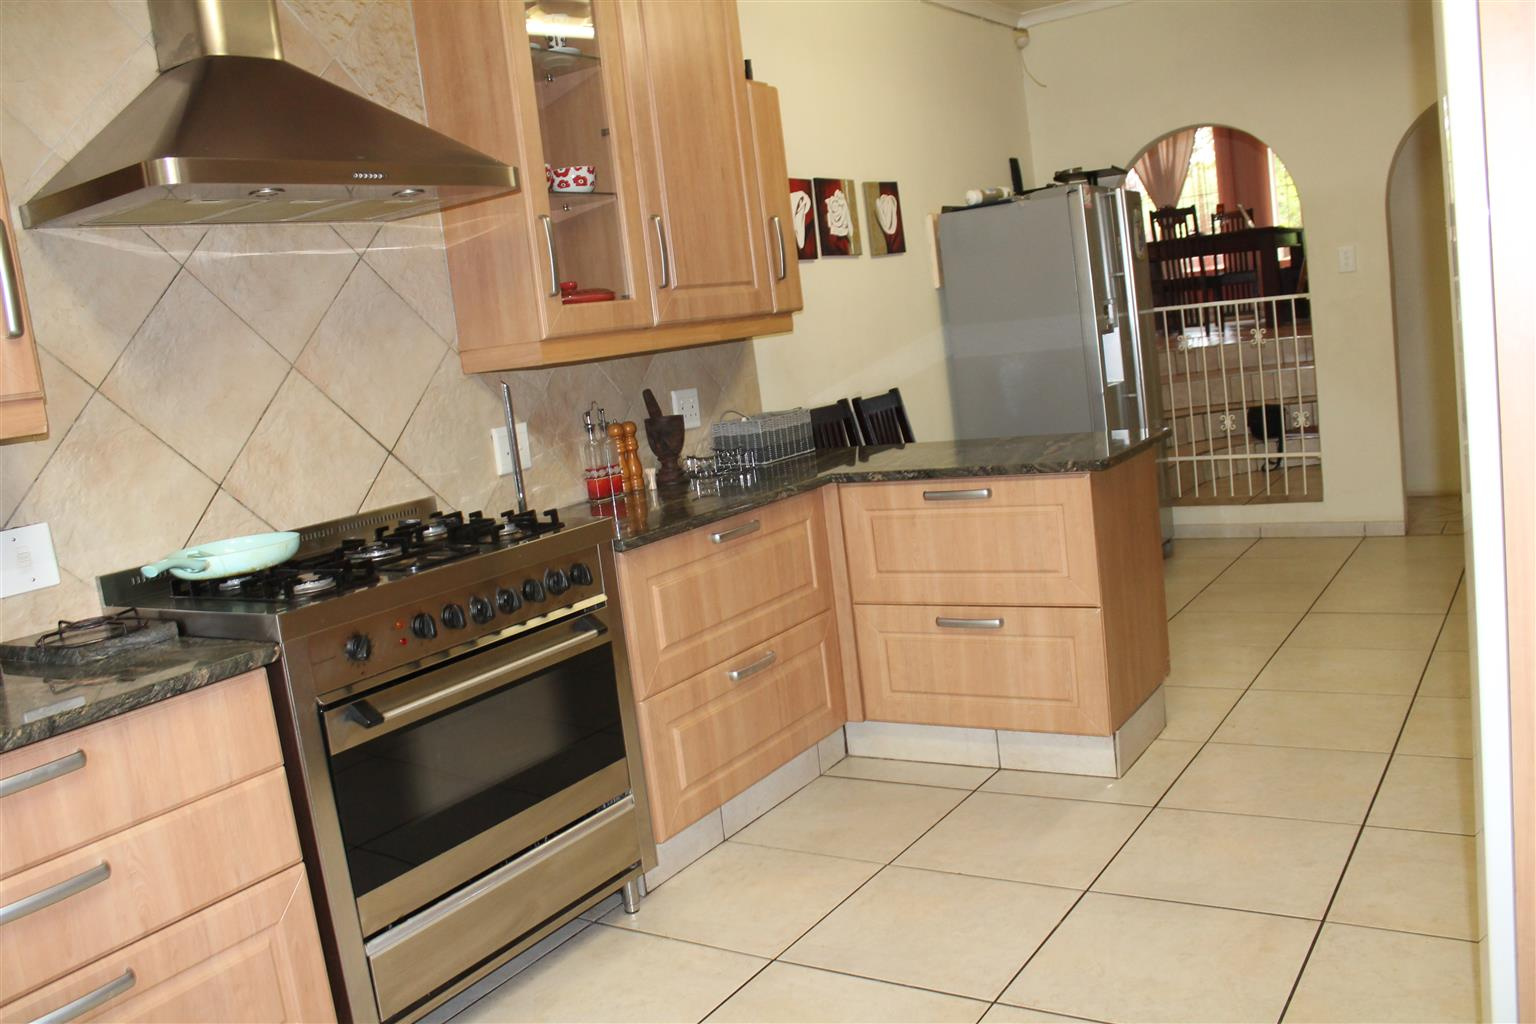 4 Bedrooms Family House with servant Quaters in Wingate Park